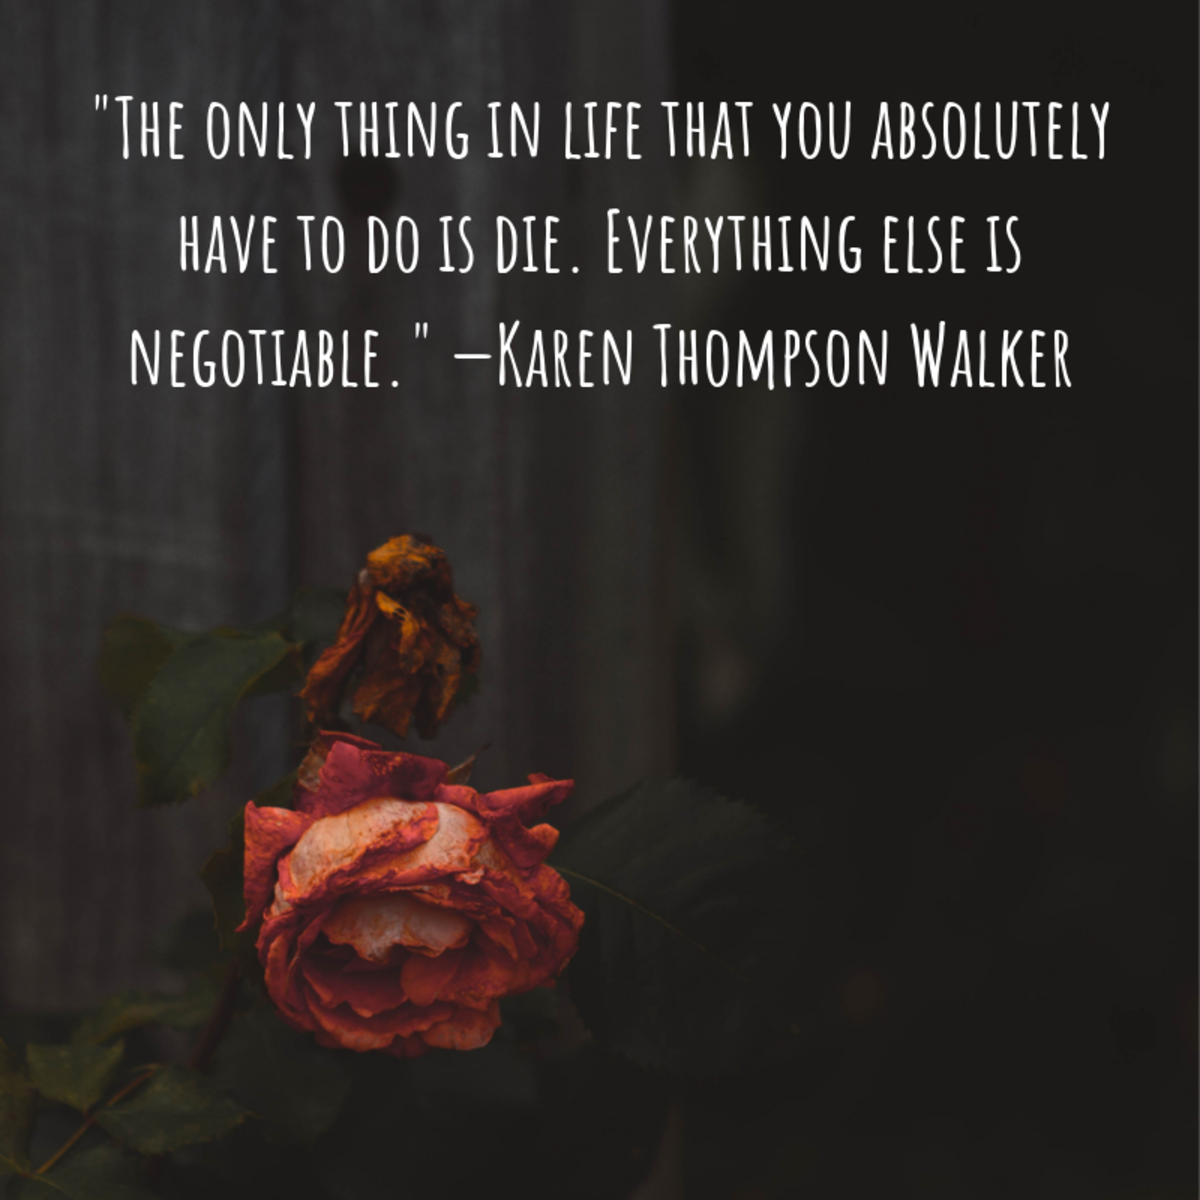 """""""The only thing in life that you absolutely have to do is die. Everything else is negotiable."""" —Karen Thompson Walker"""